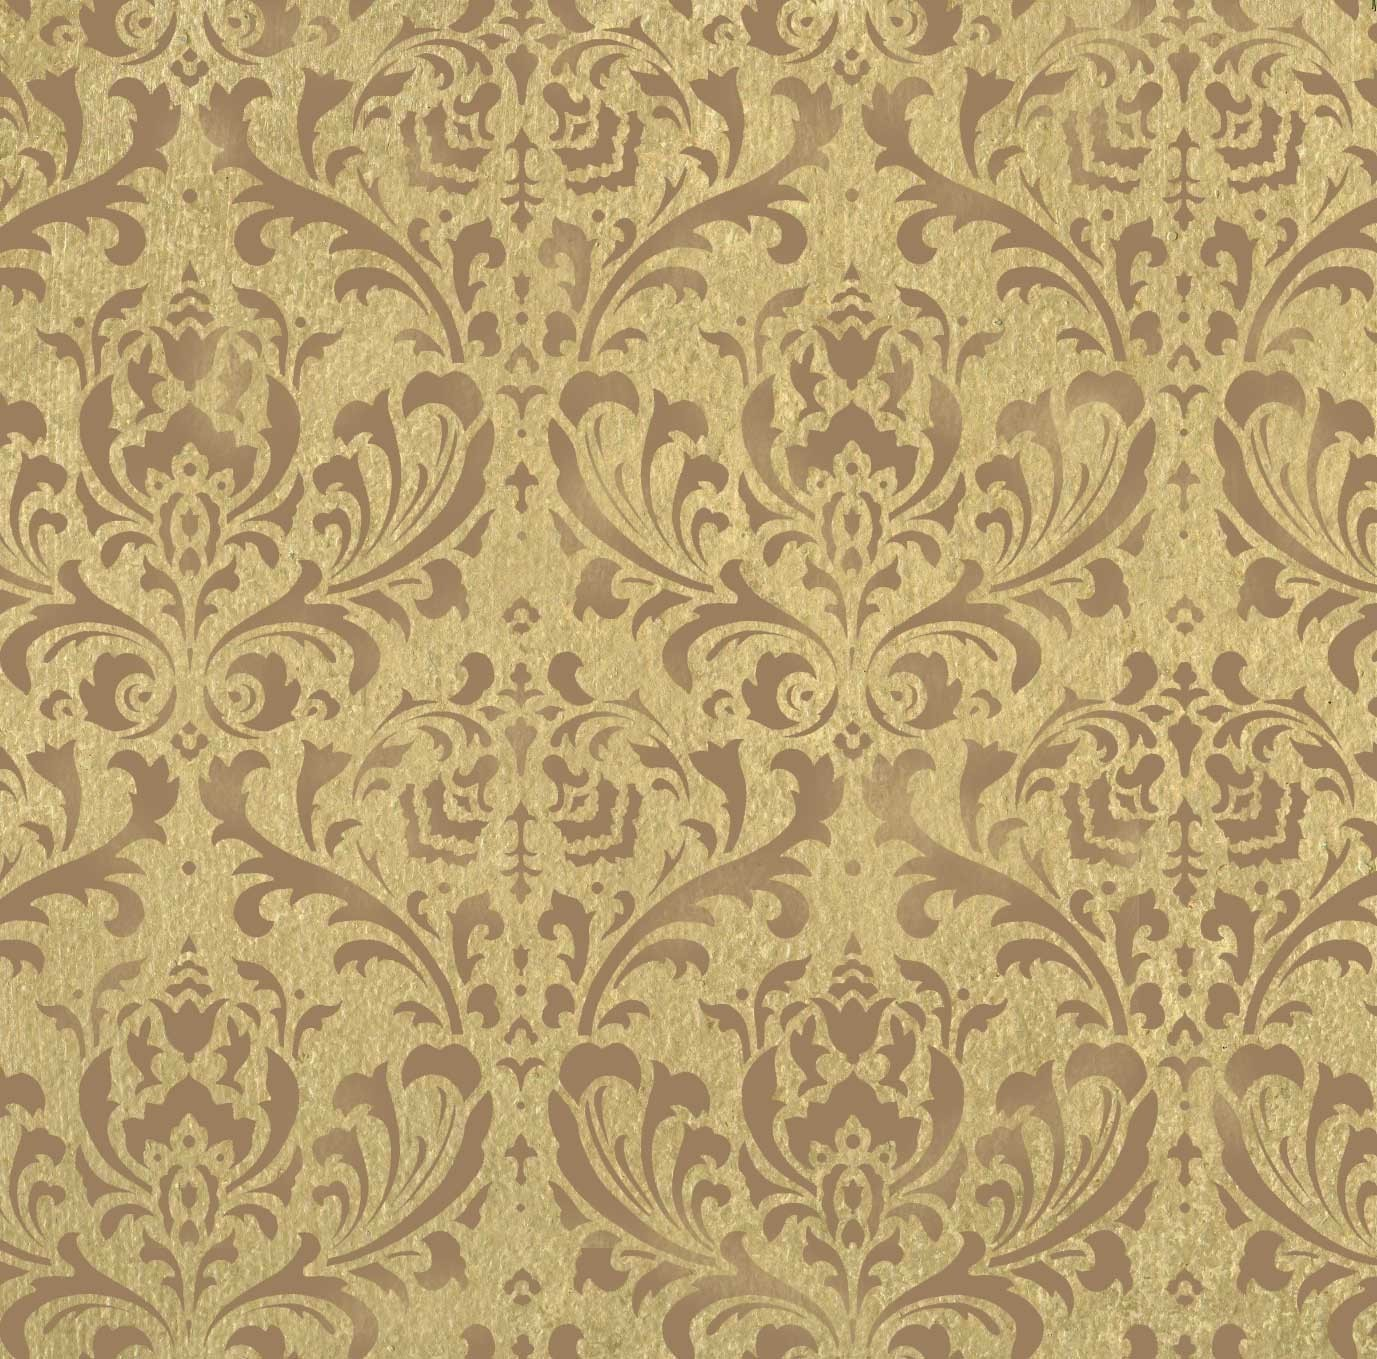 WALL STENCIL DAMASK BROCADE PATTERN 24X26 by CuttingEdgeStencils 1377x1359